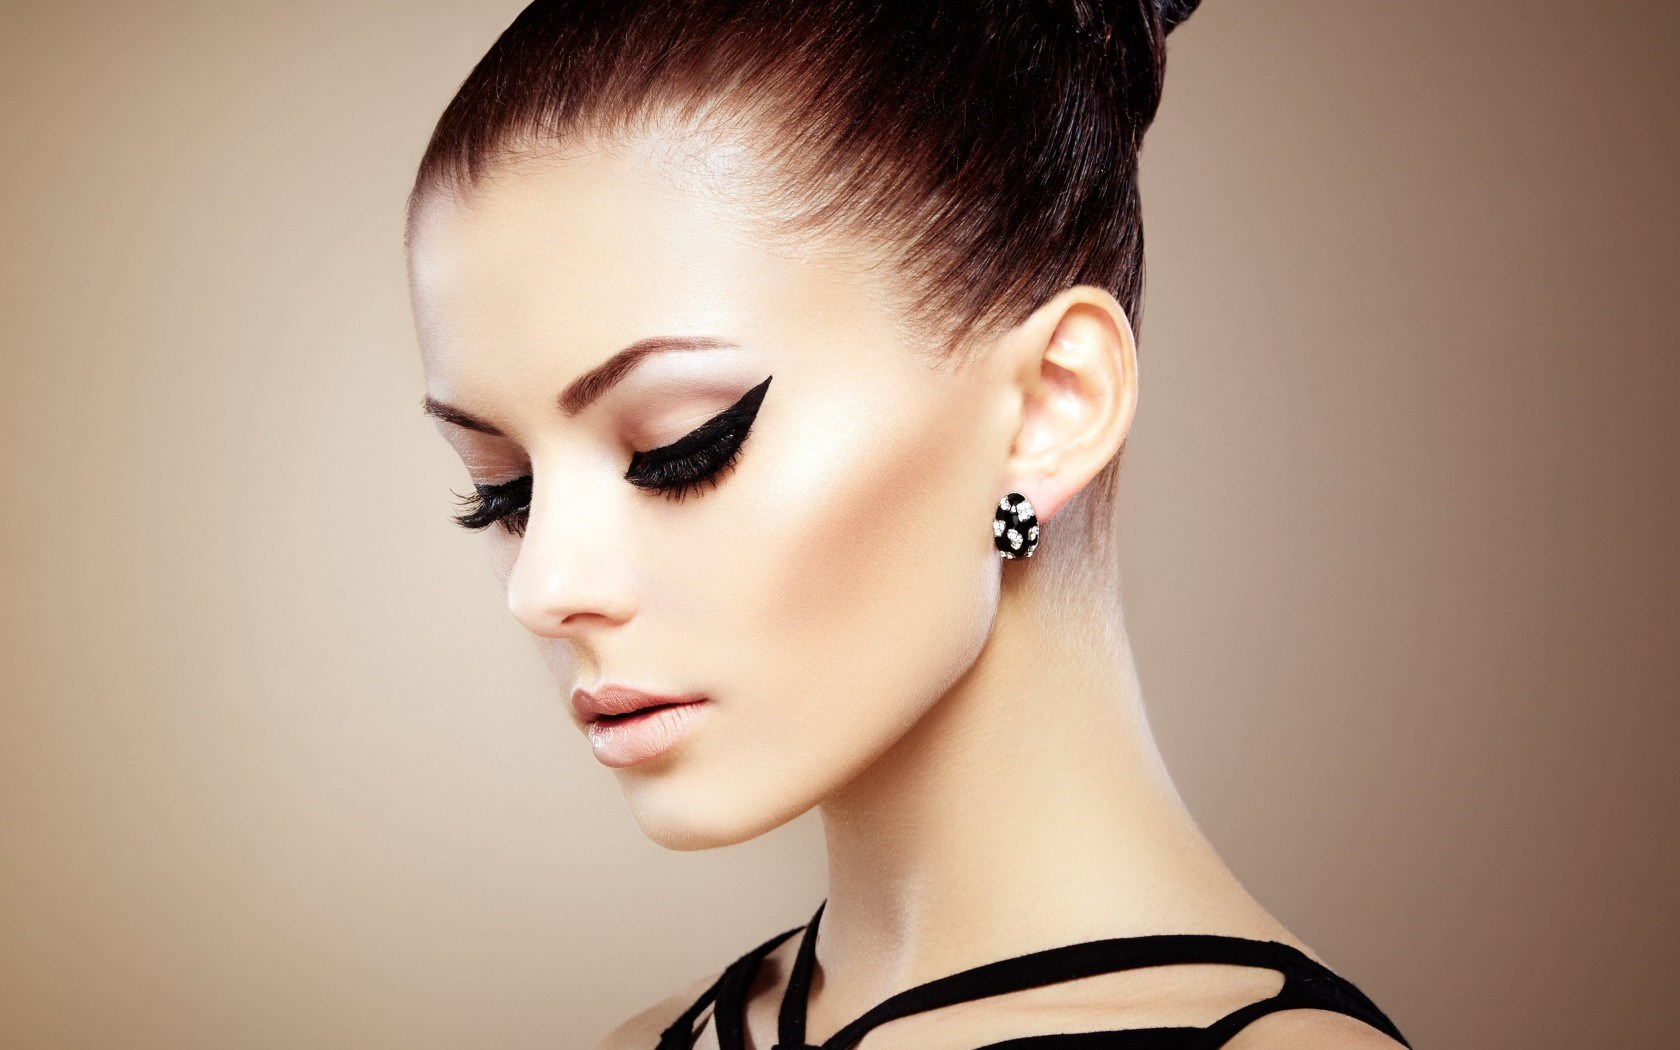 Girl Profile Makeup Fashion Model